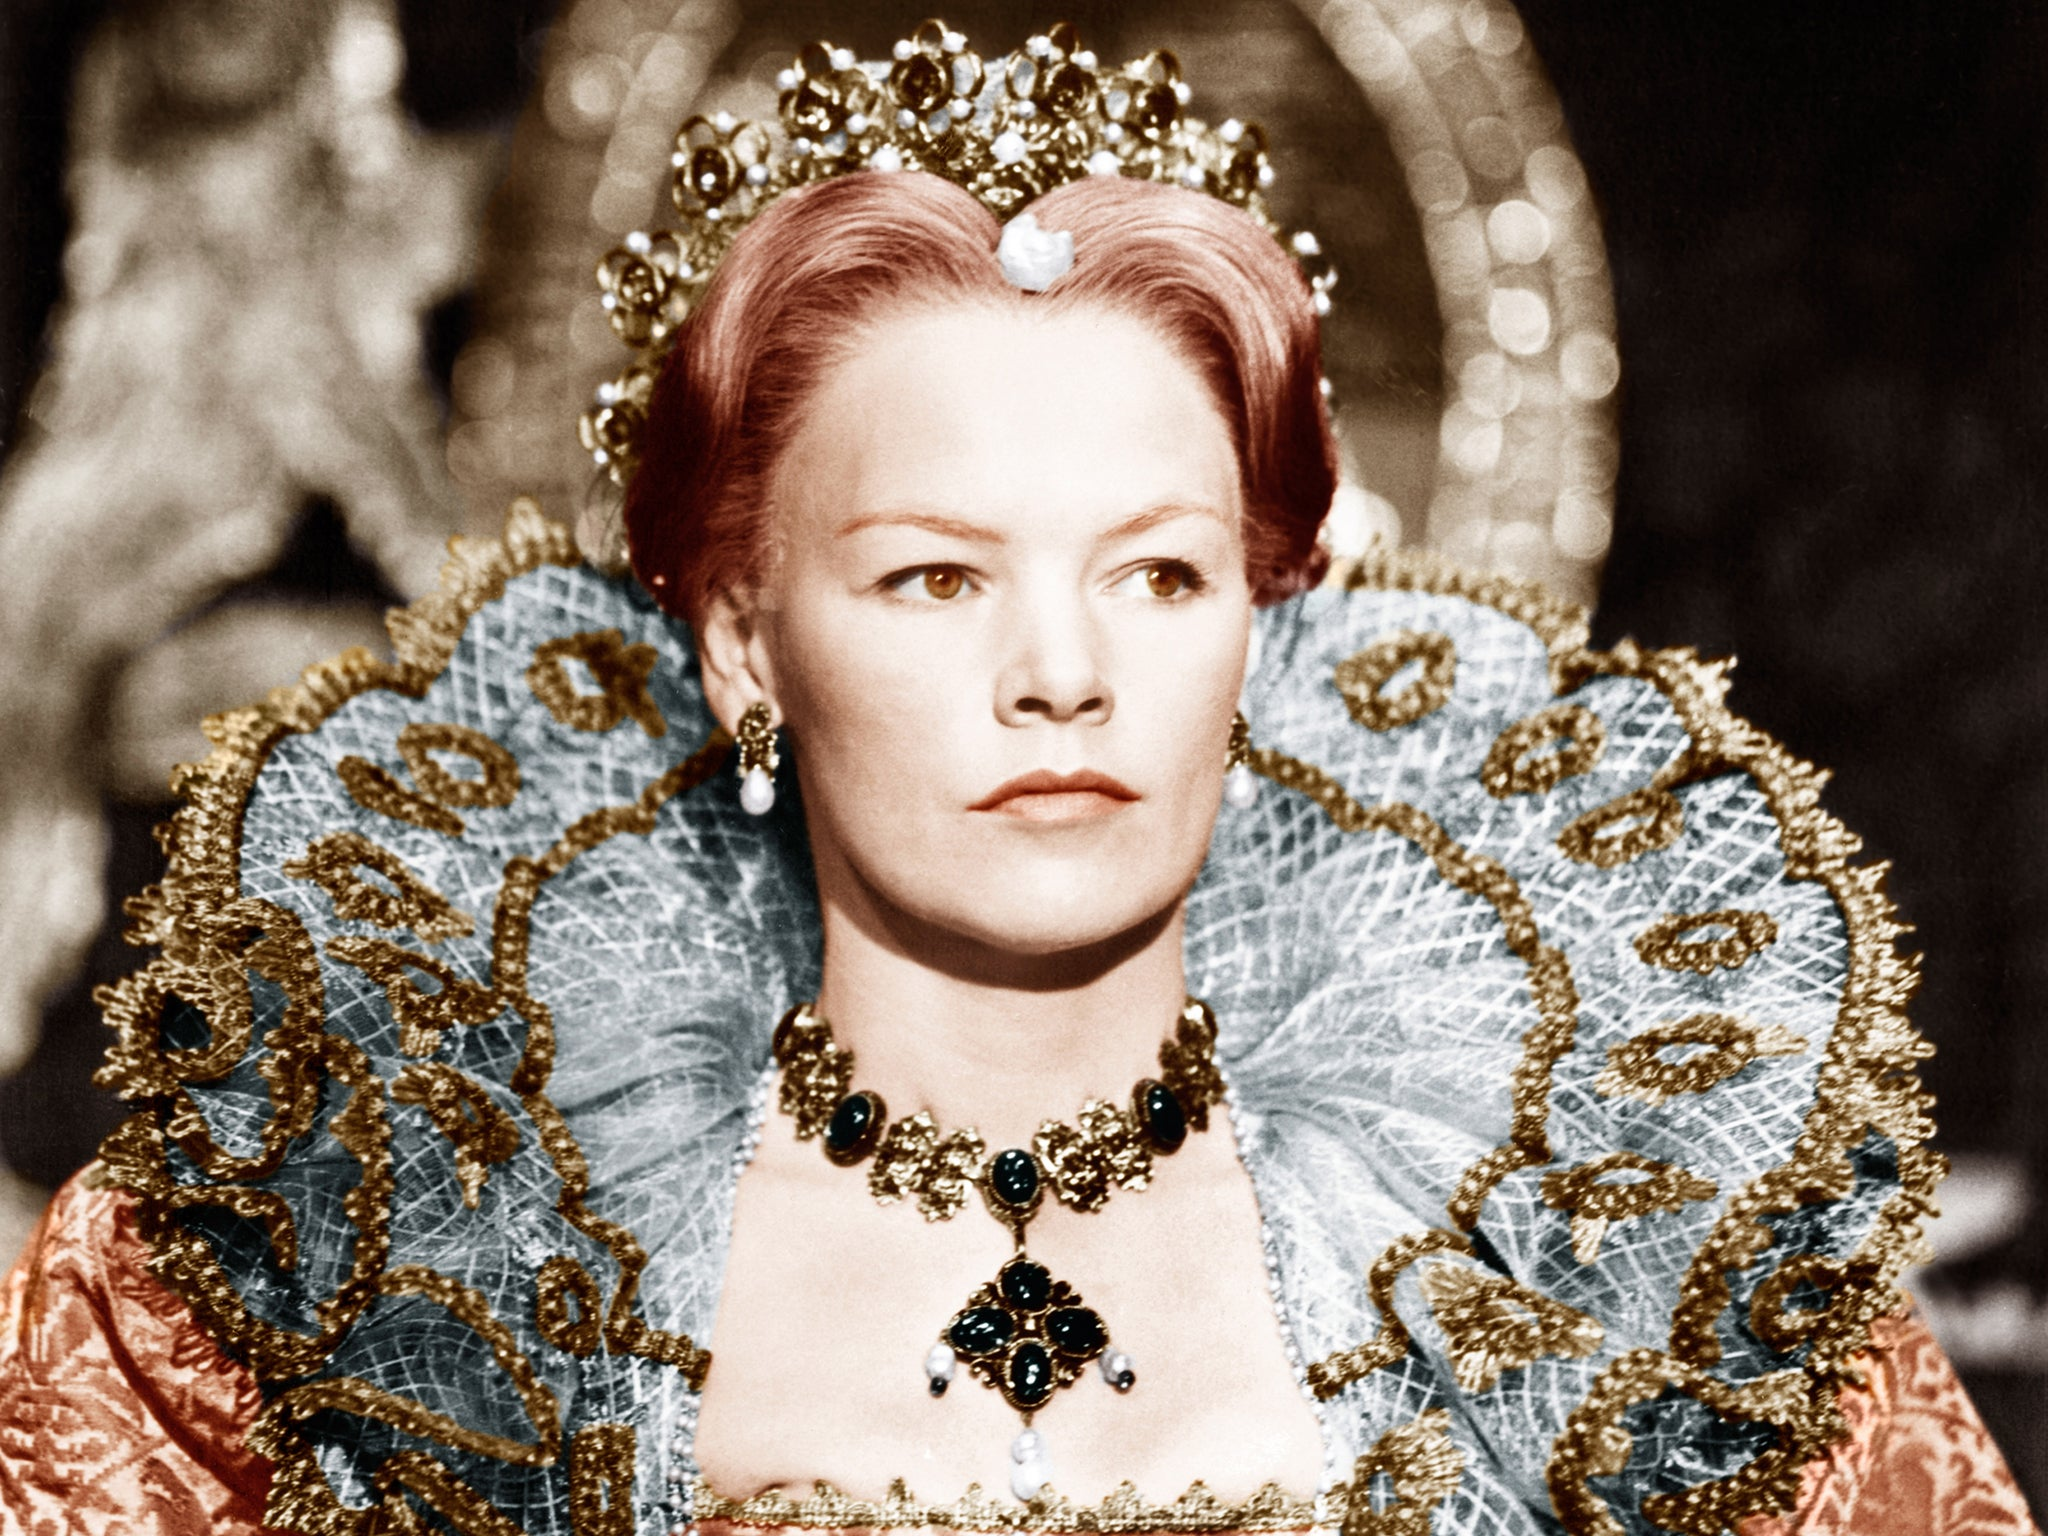 Glenda Jackson Returns To Stage As King Lear In Gender